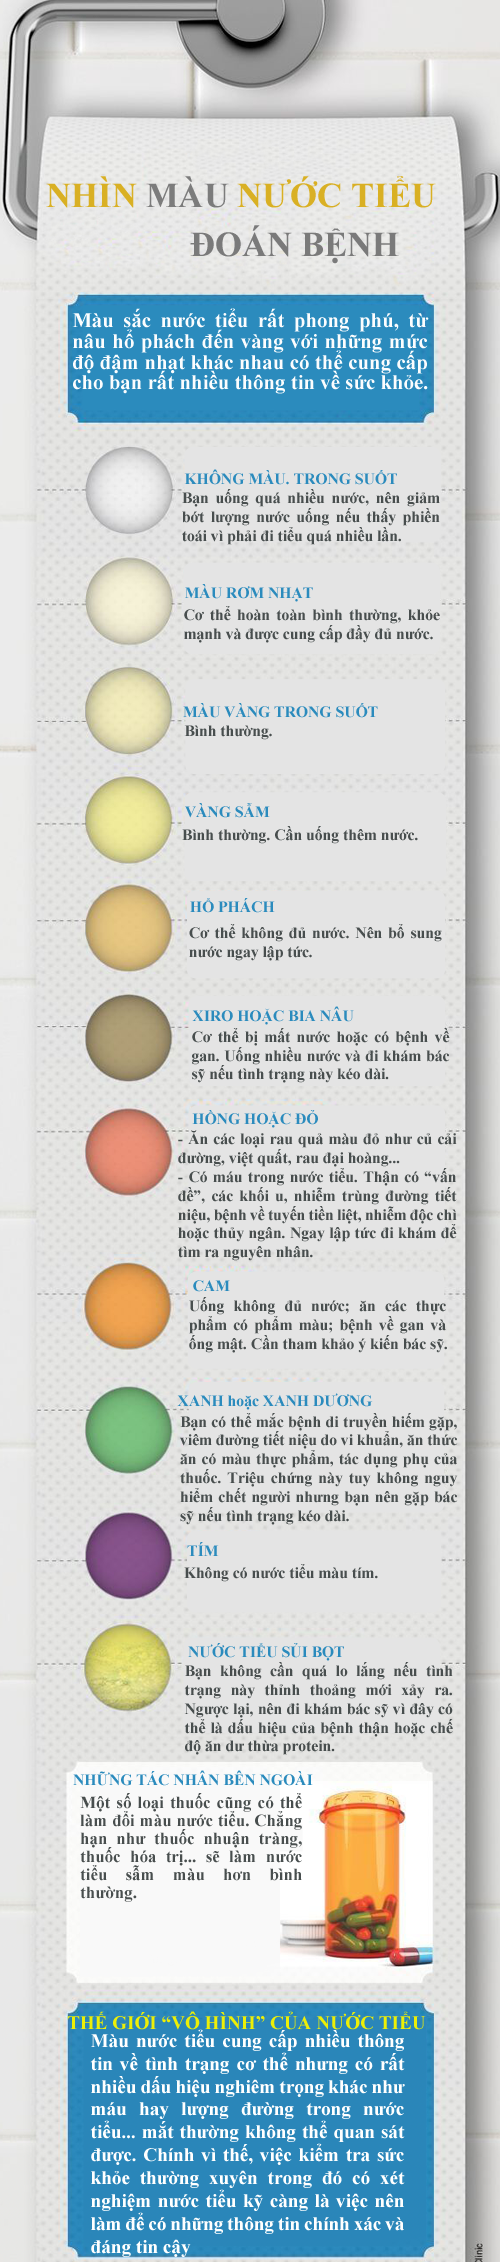 color-of-pee-copy-6489-1393824673.png